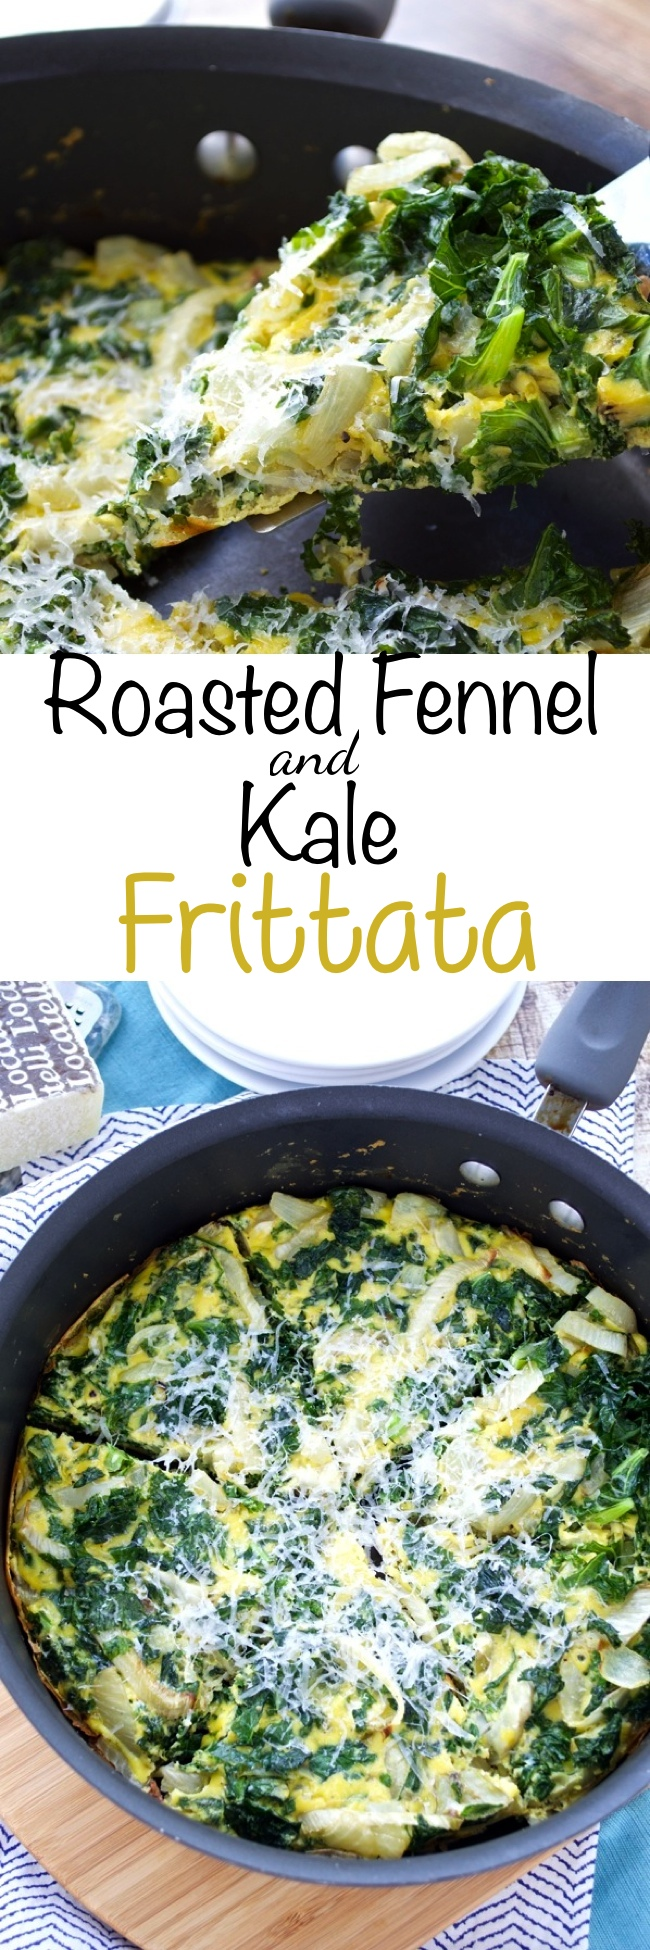 Roasted Fennel and Kale Frittata Pin